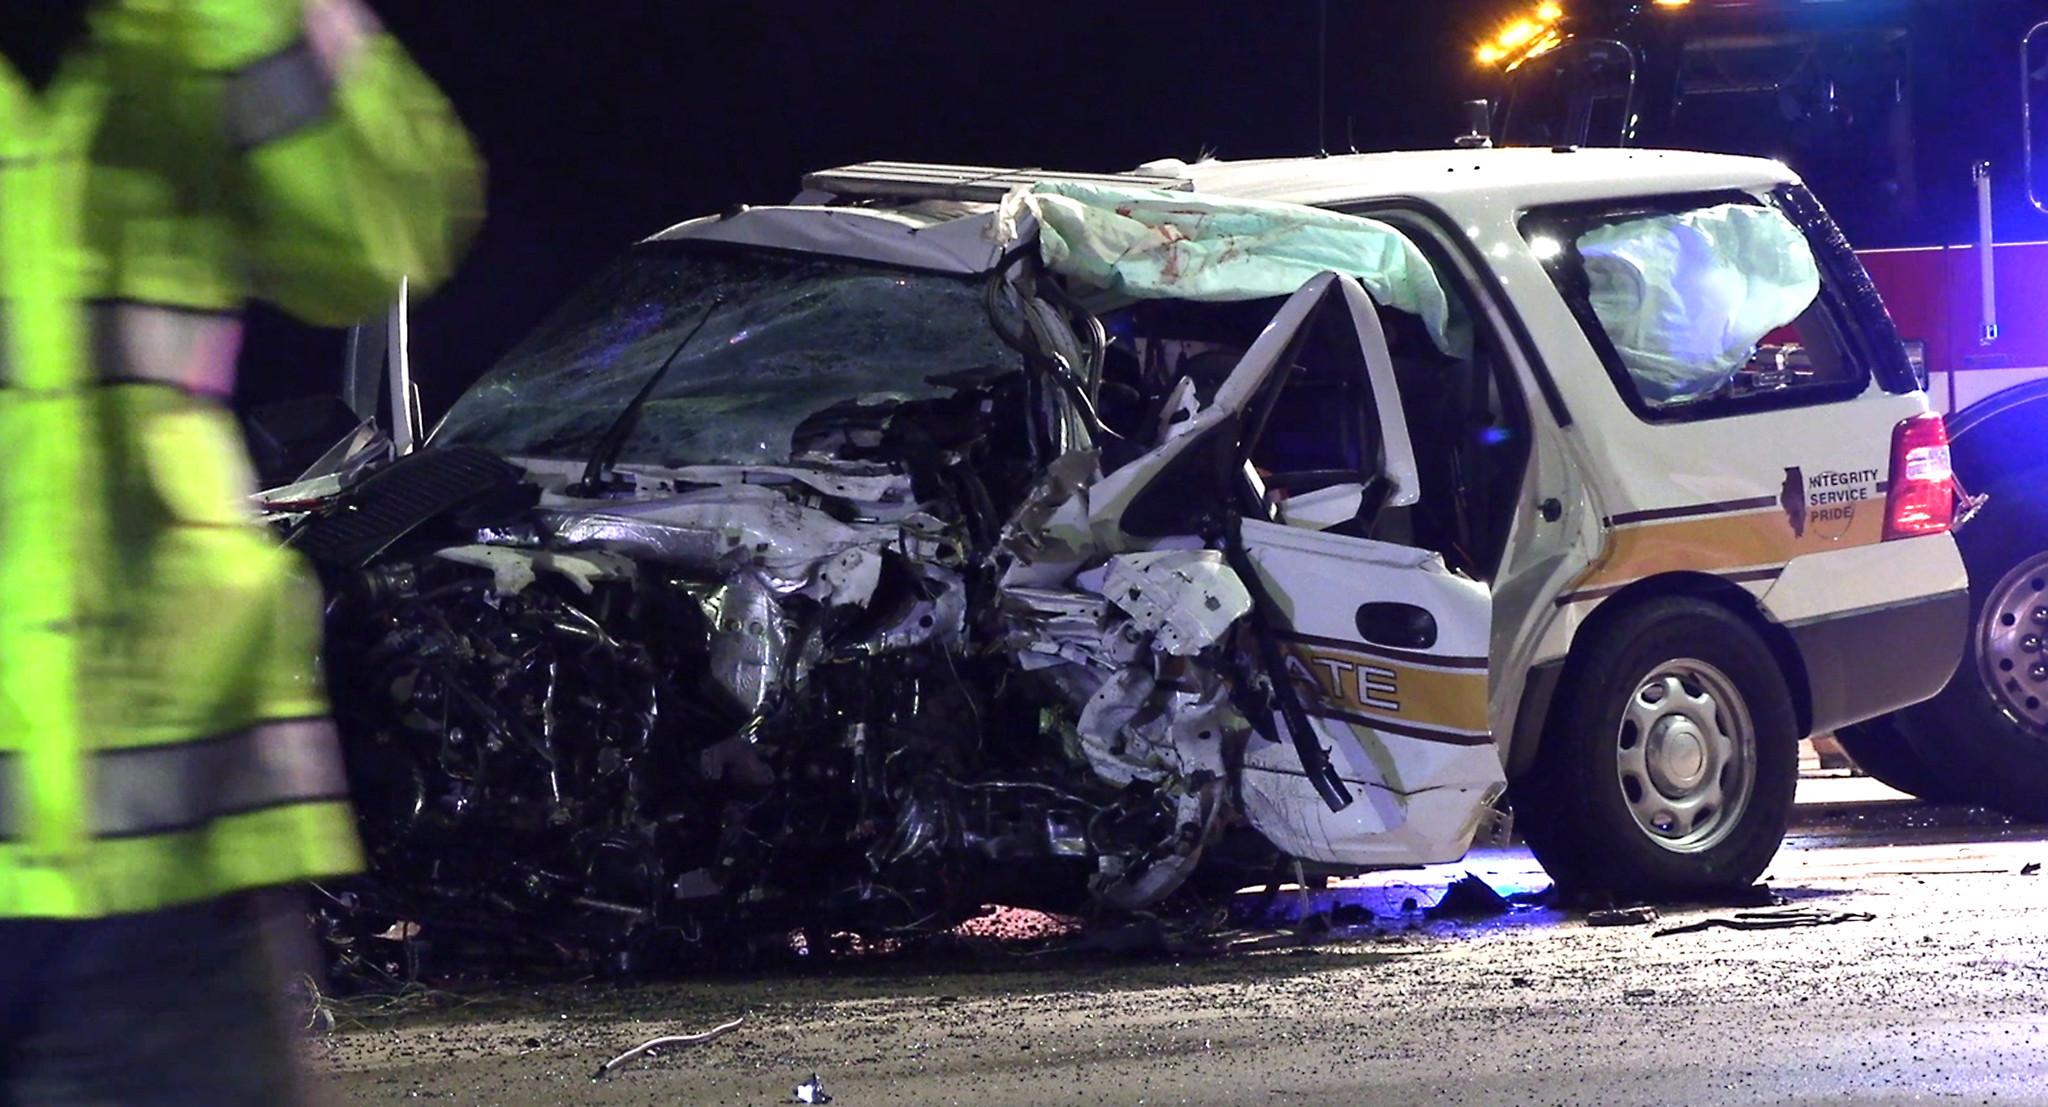 Bitter salt in an open wound': Trooper killed in crash on I-94 near